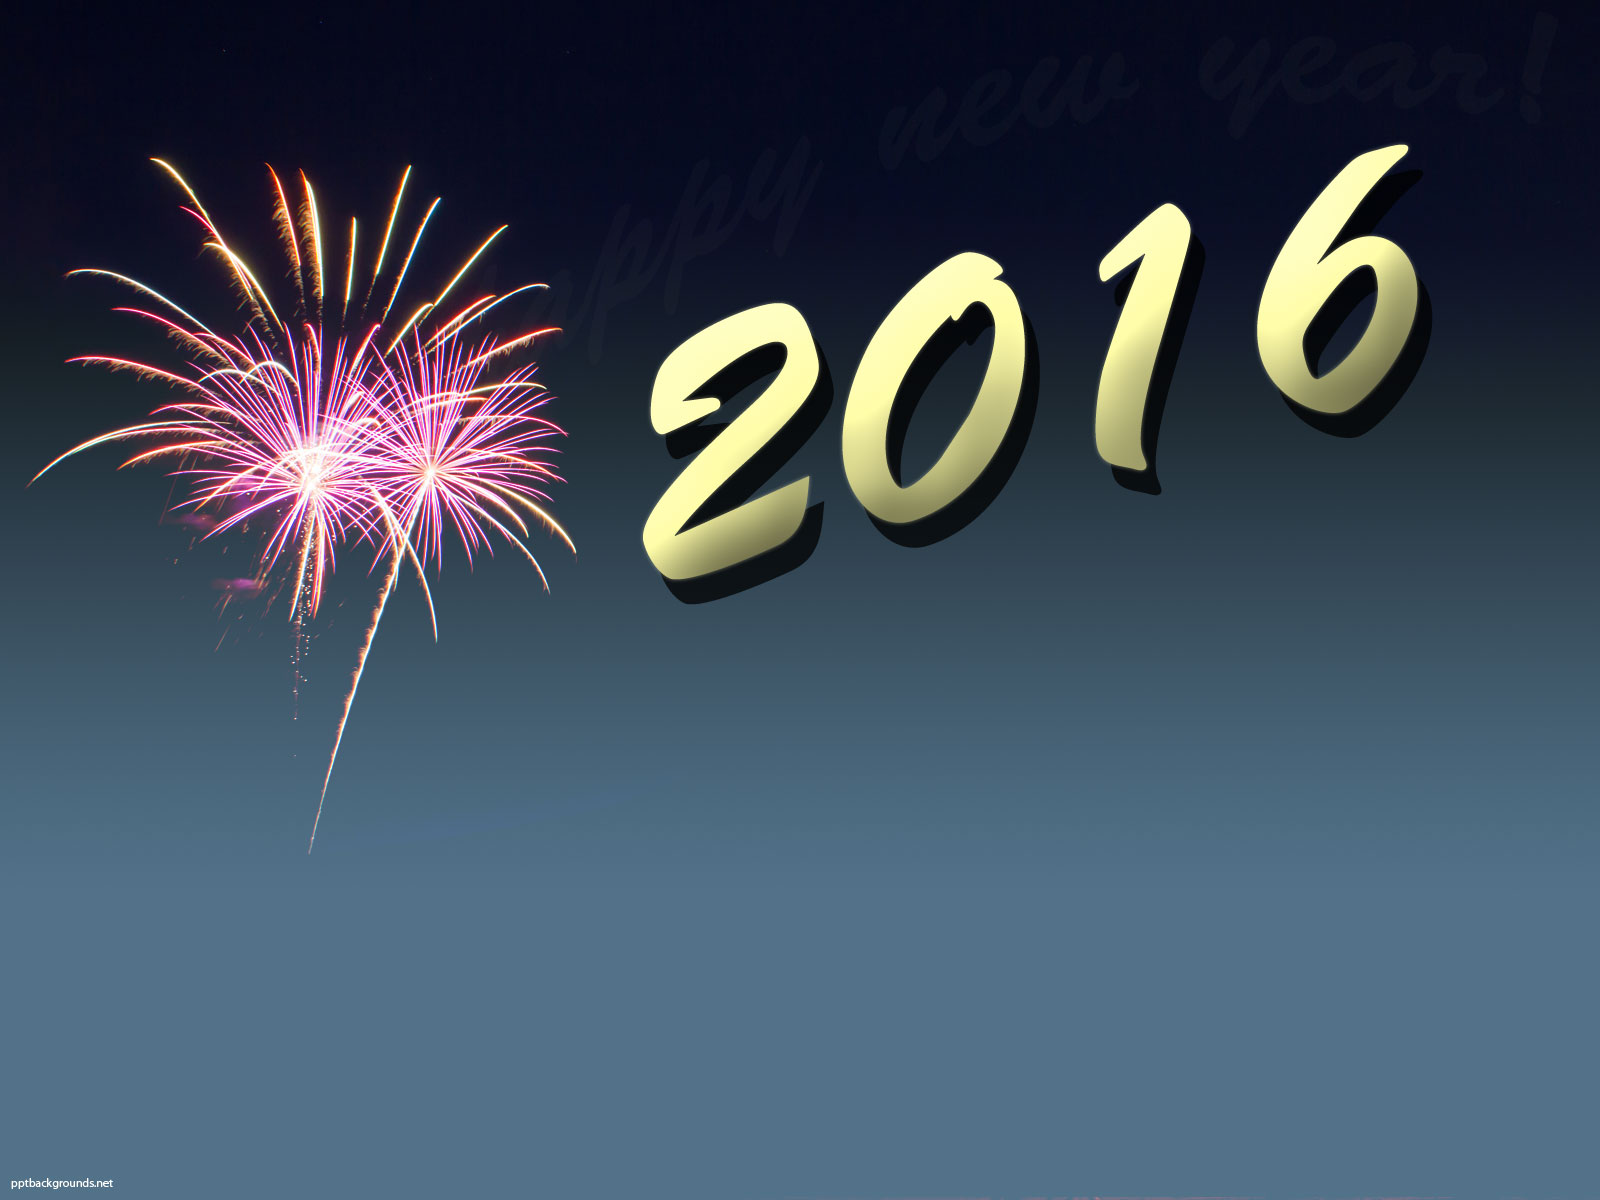 This is the New Year 2016 background image You can use PowerPoint 1600x1200